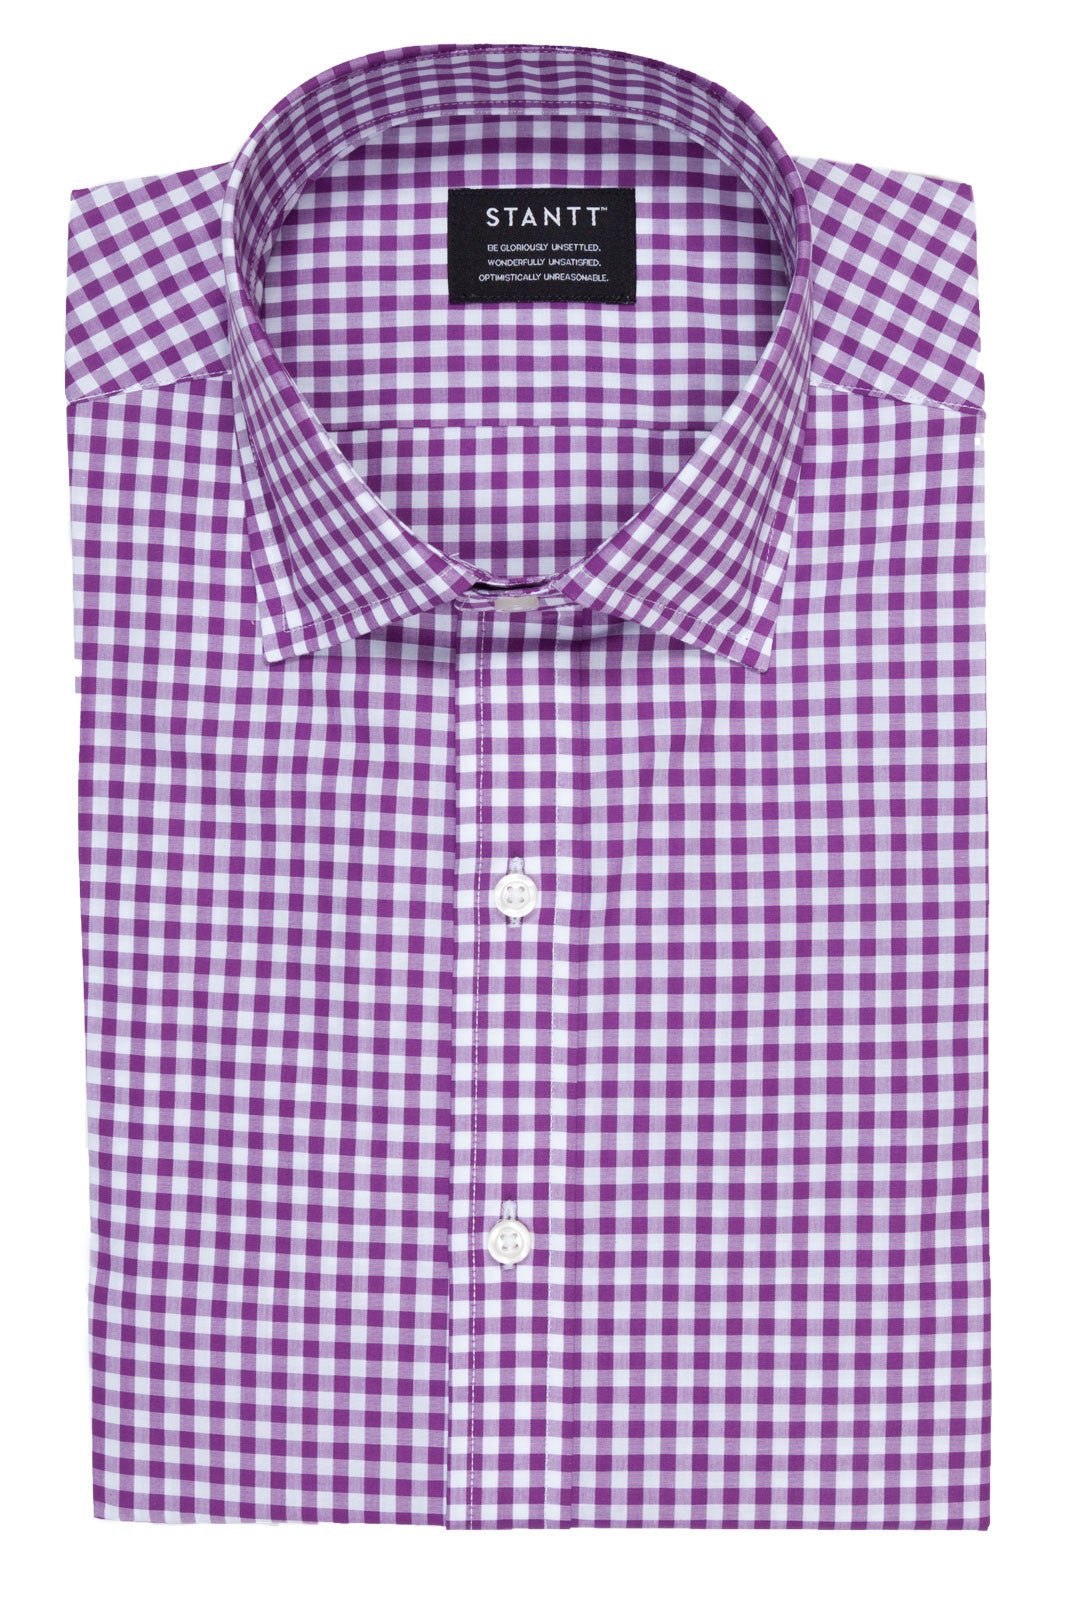 Purple Gingham: Modified-Spread Collar, French Cuff